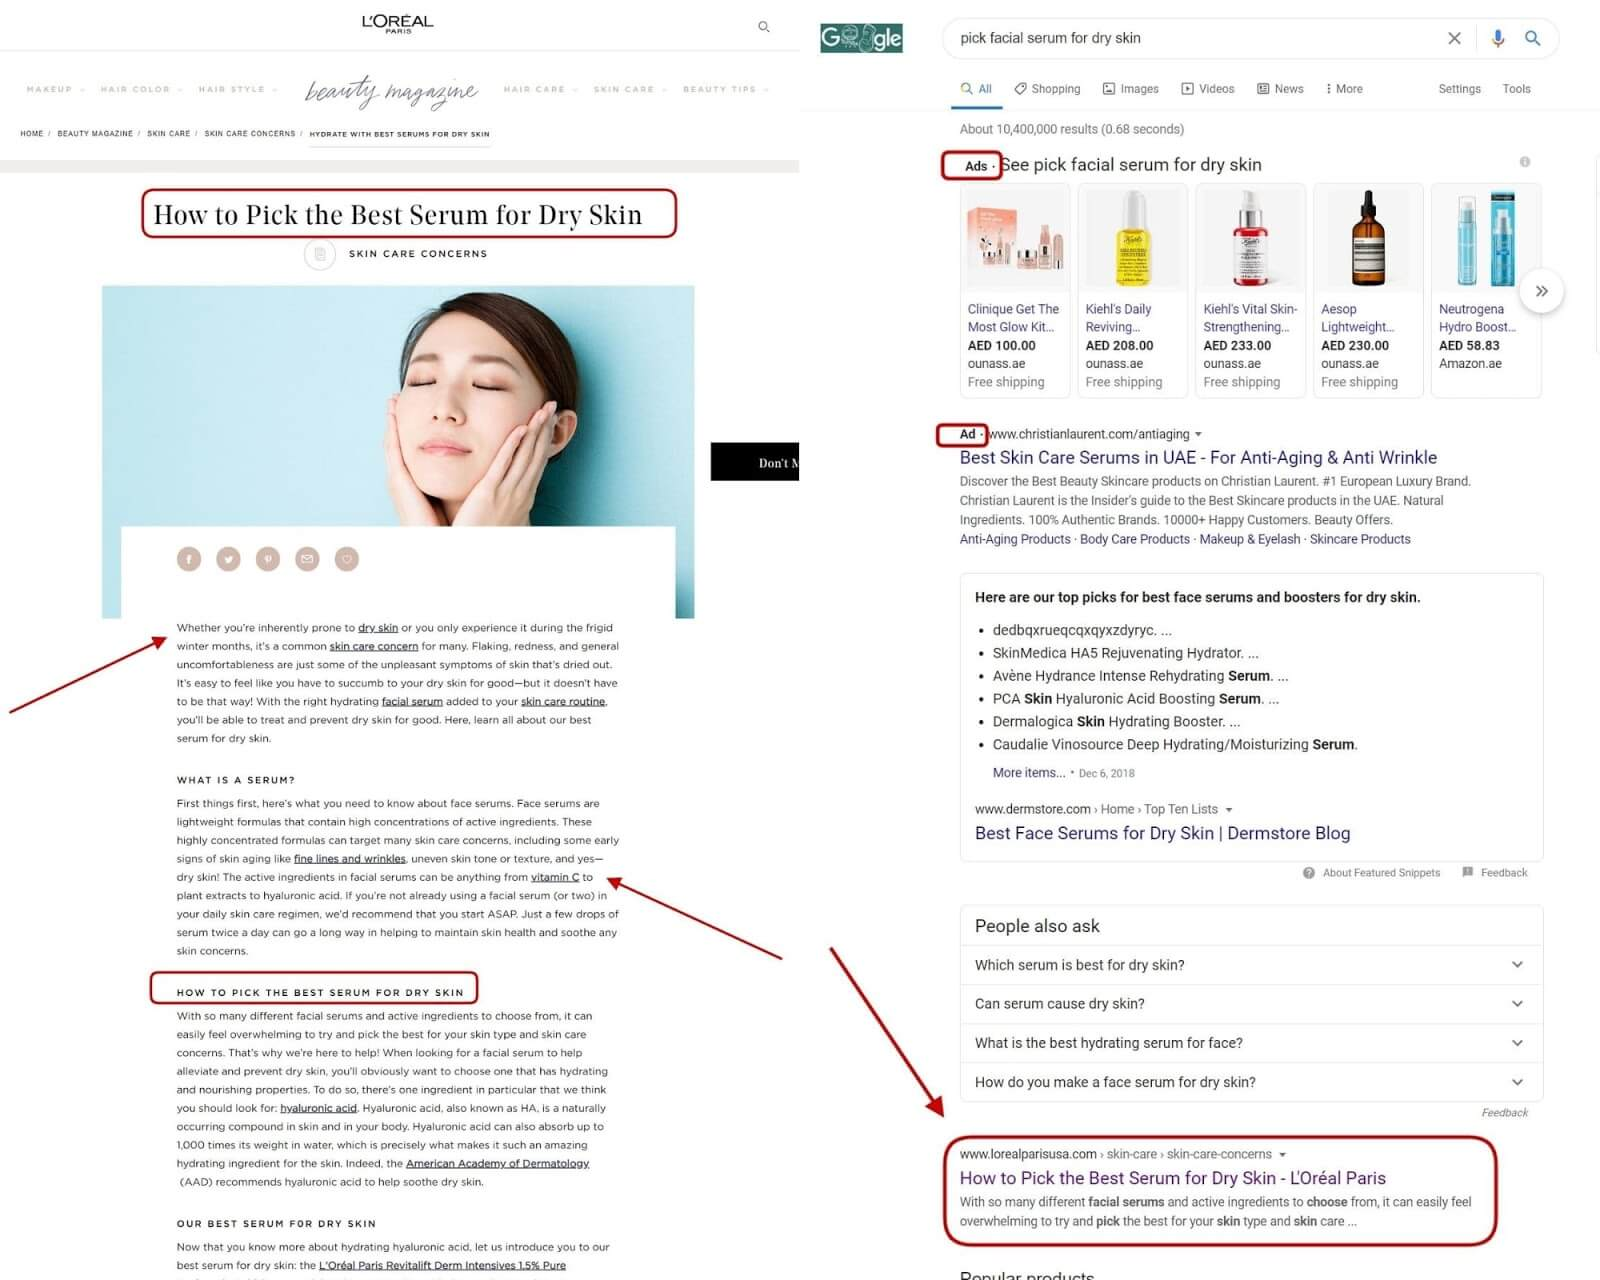 Example of the article on the L'Oreal website